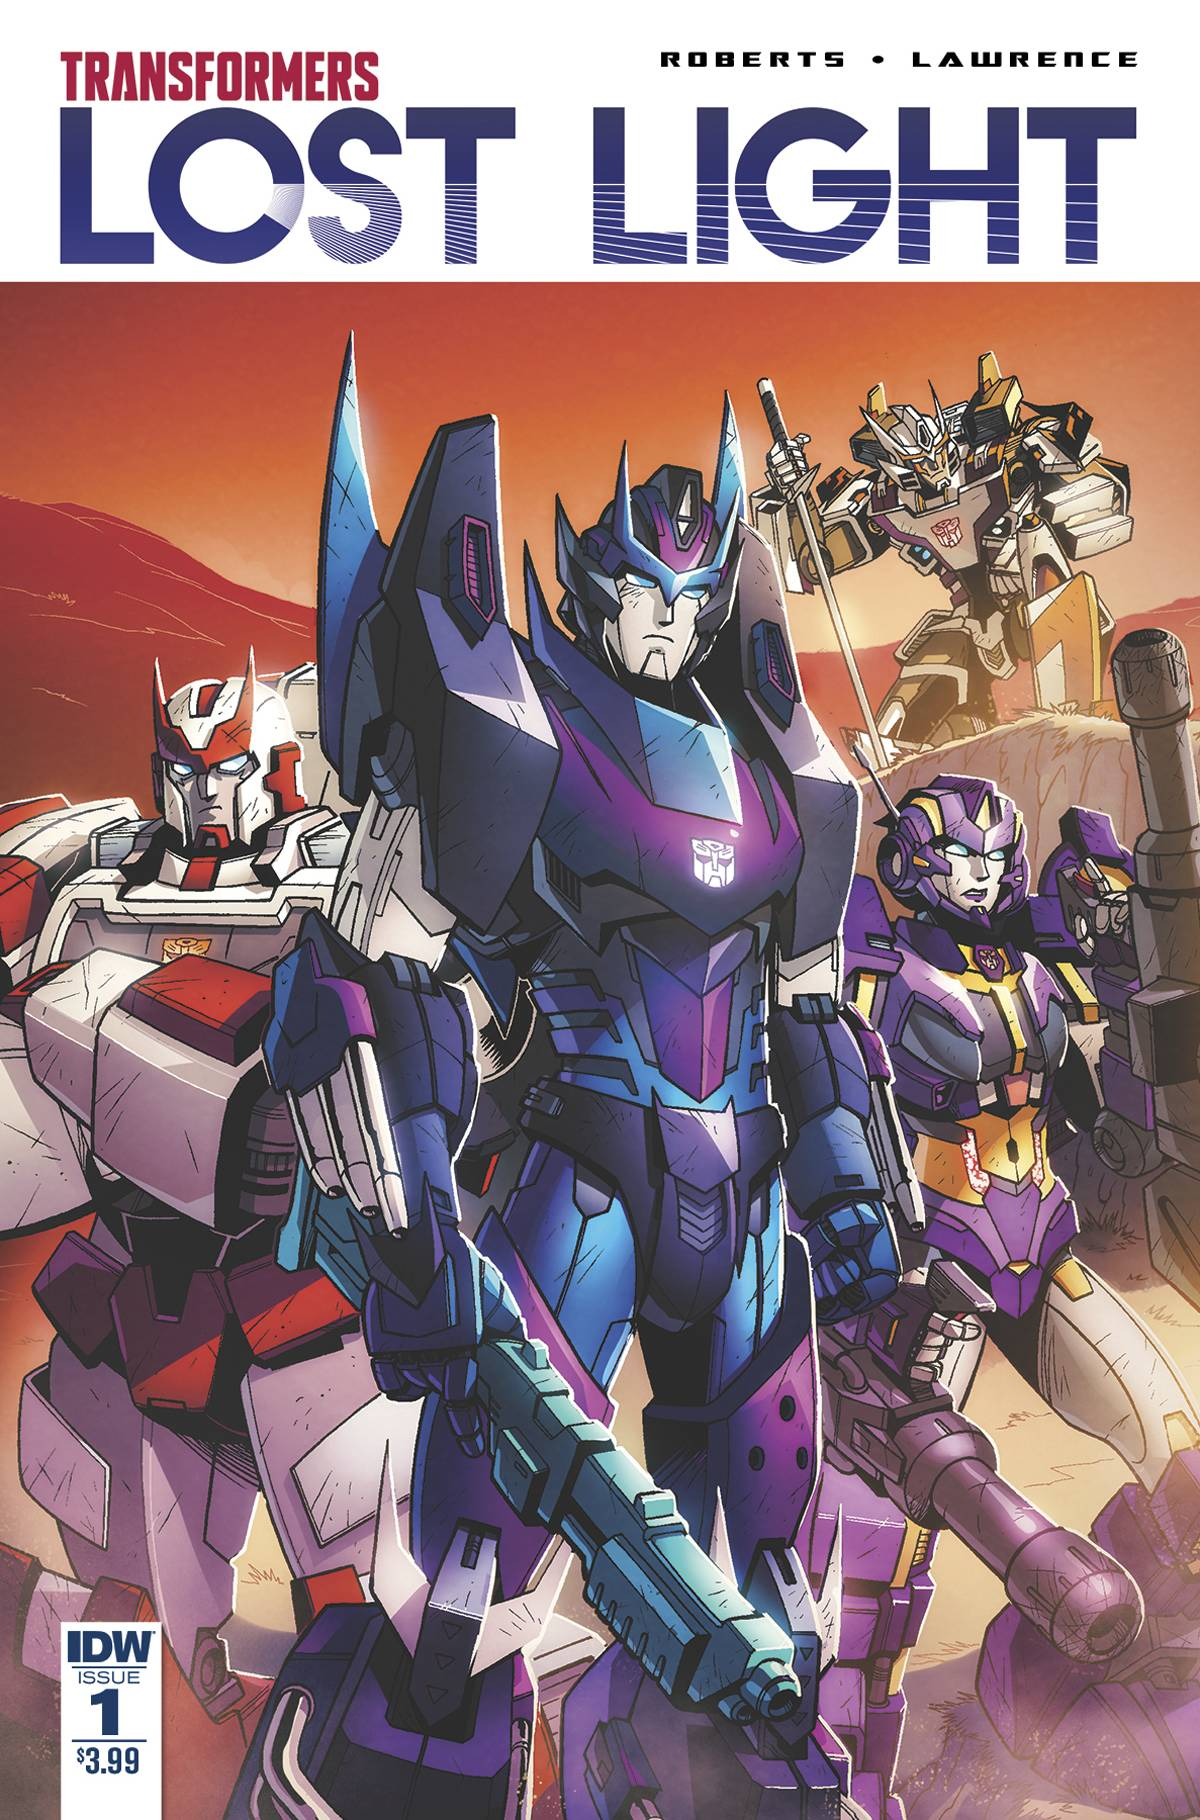 TRANSFORMERS LOST LIGHT #1